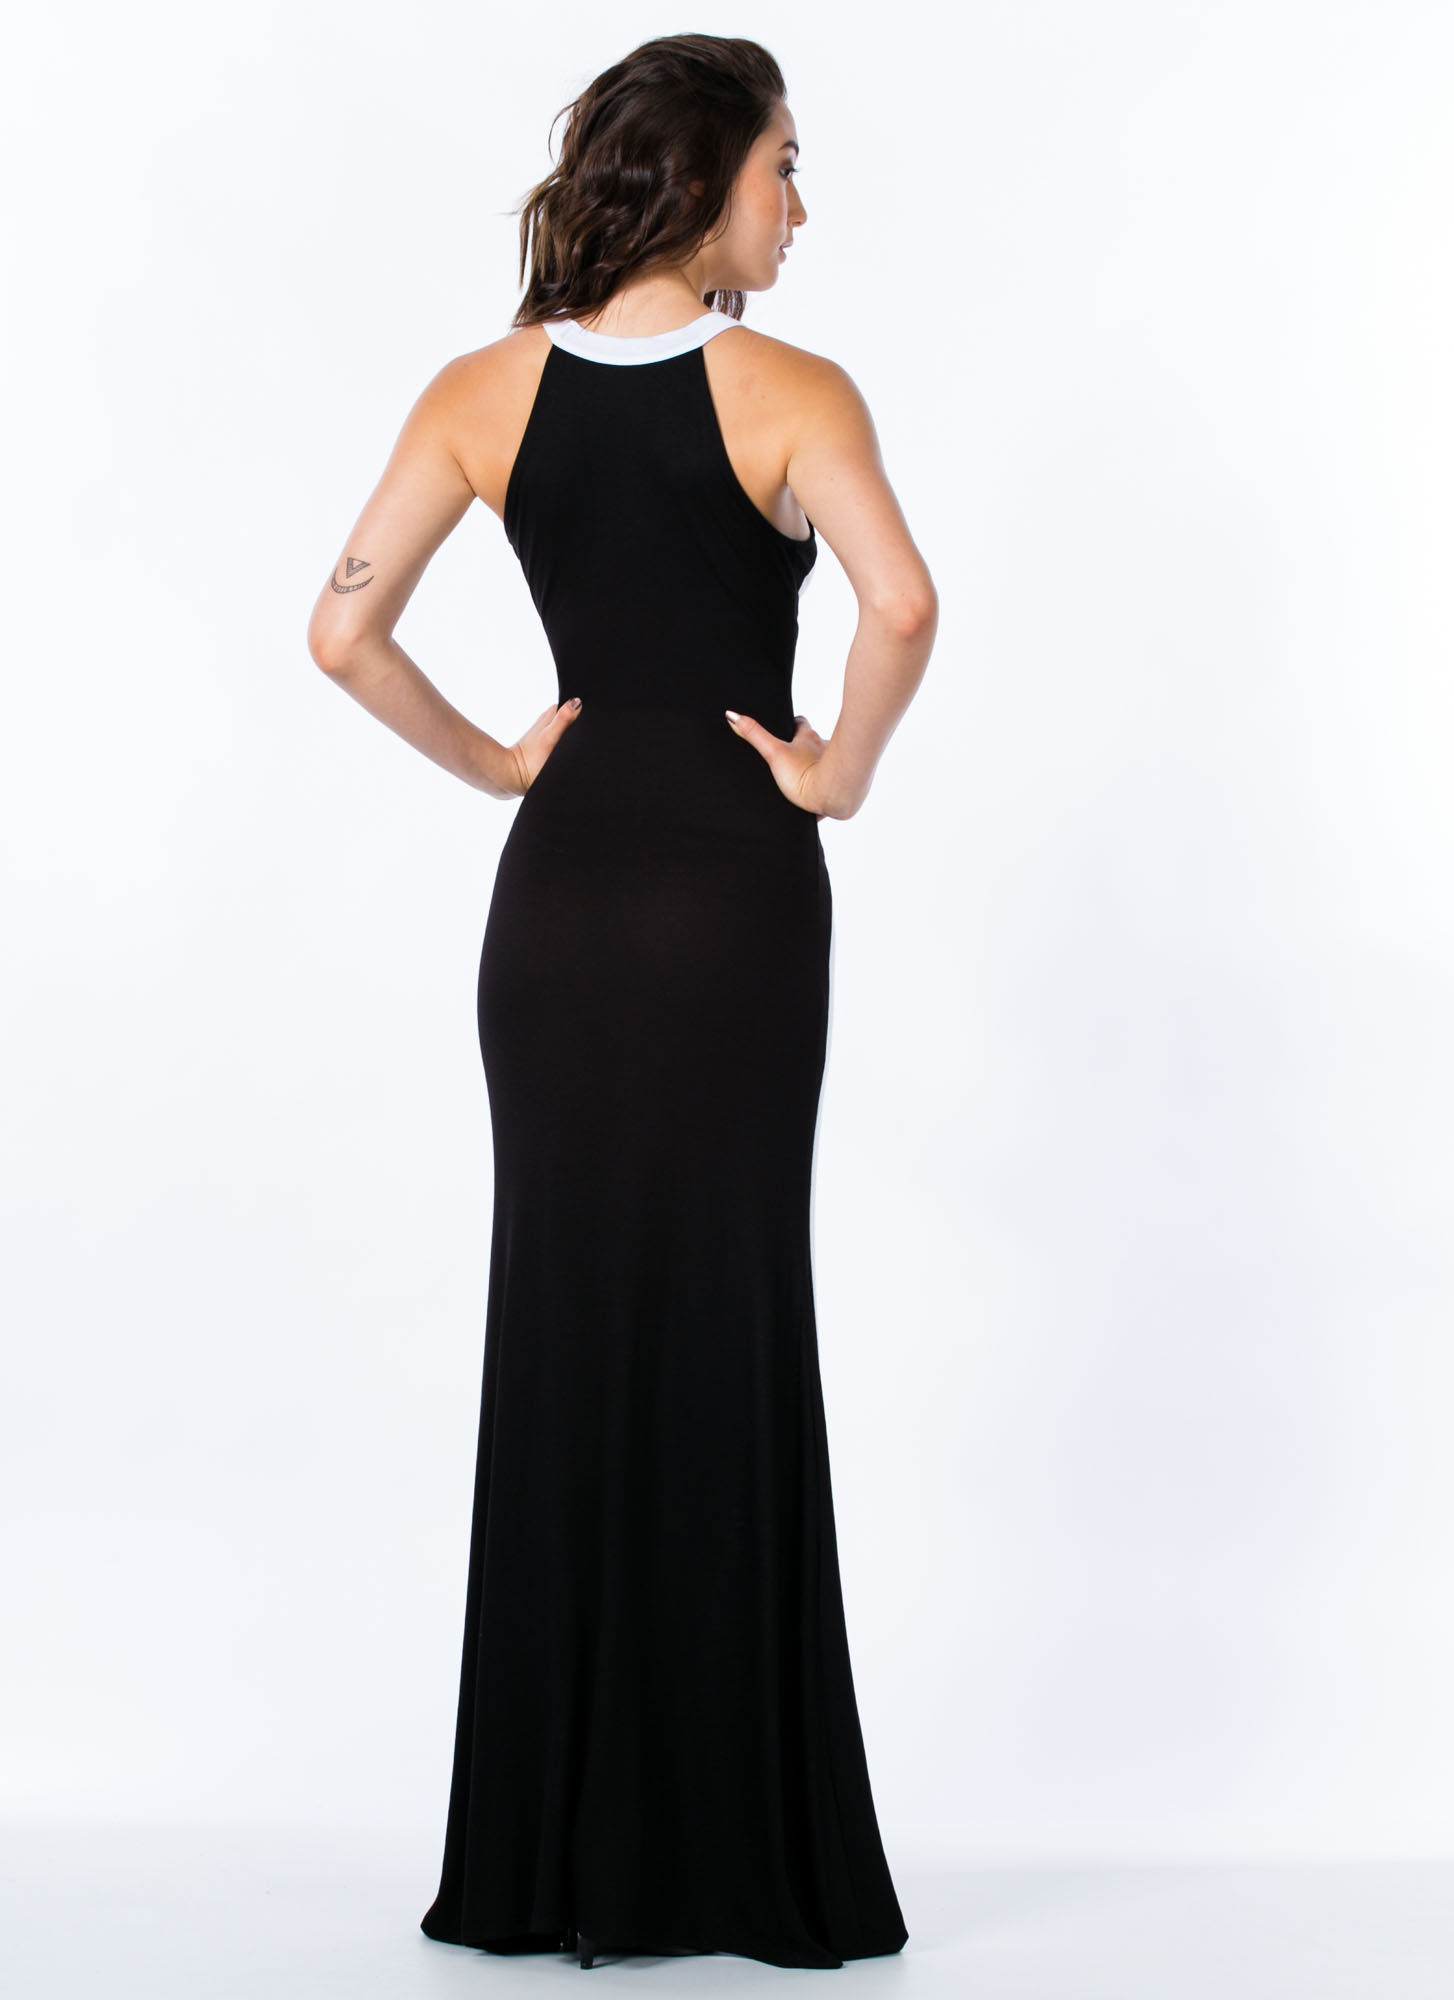 Hourglass Figure Mermaid Maxi WHITEBLACK